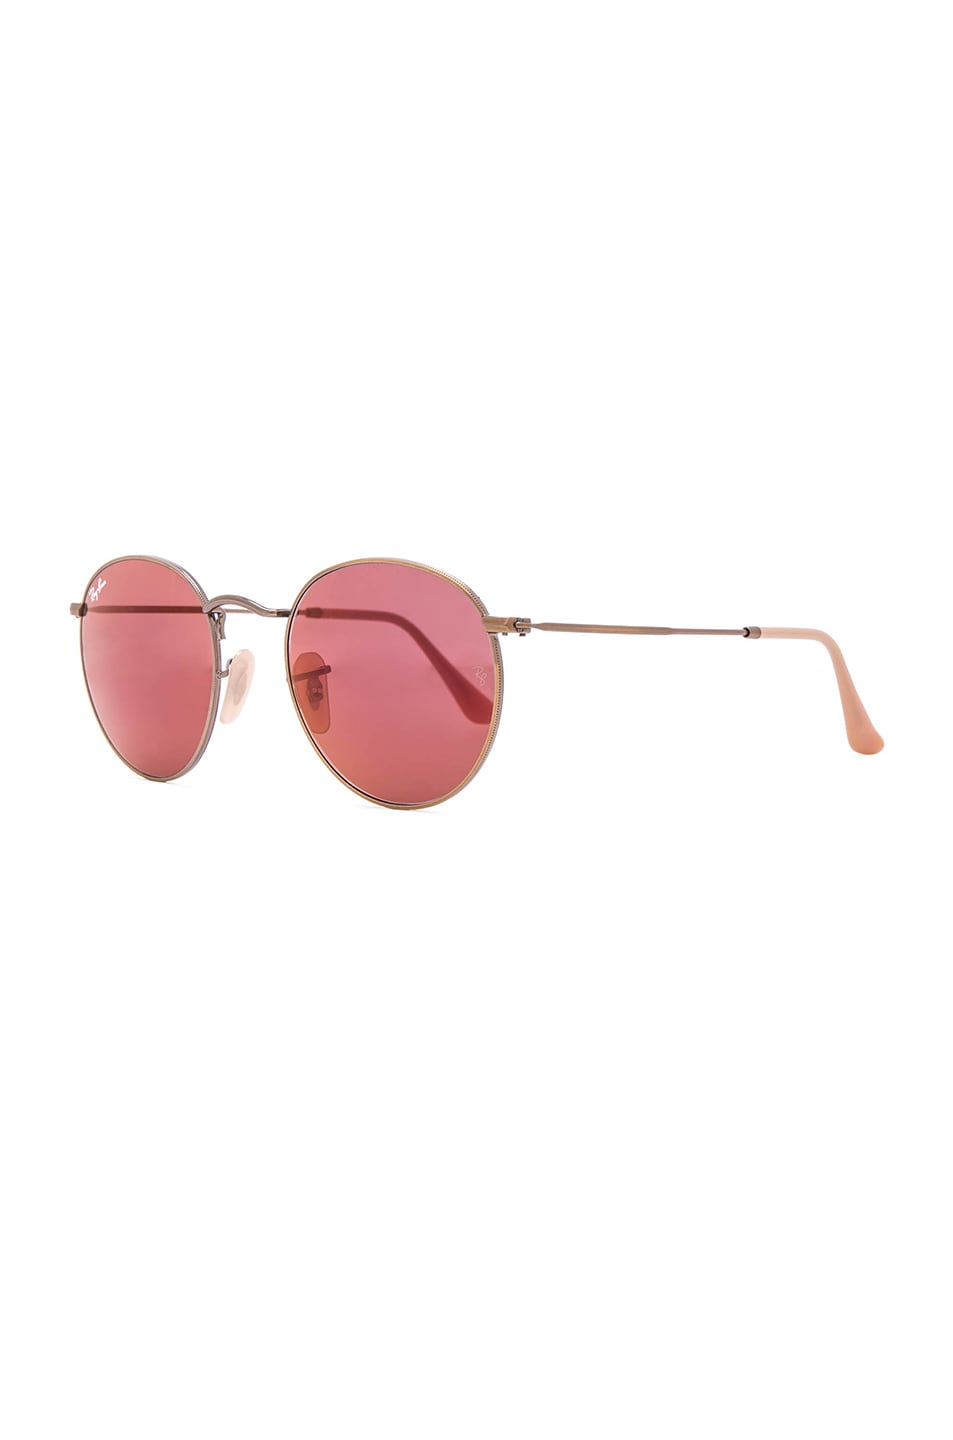 Image 2 of Ray-Ban Round Sunglasses in Red Mirror